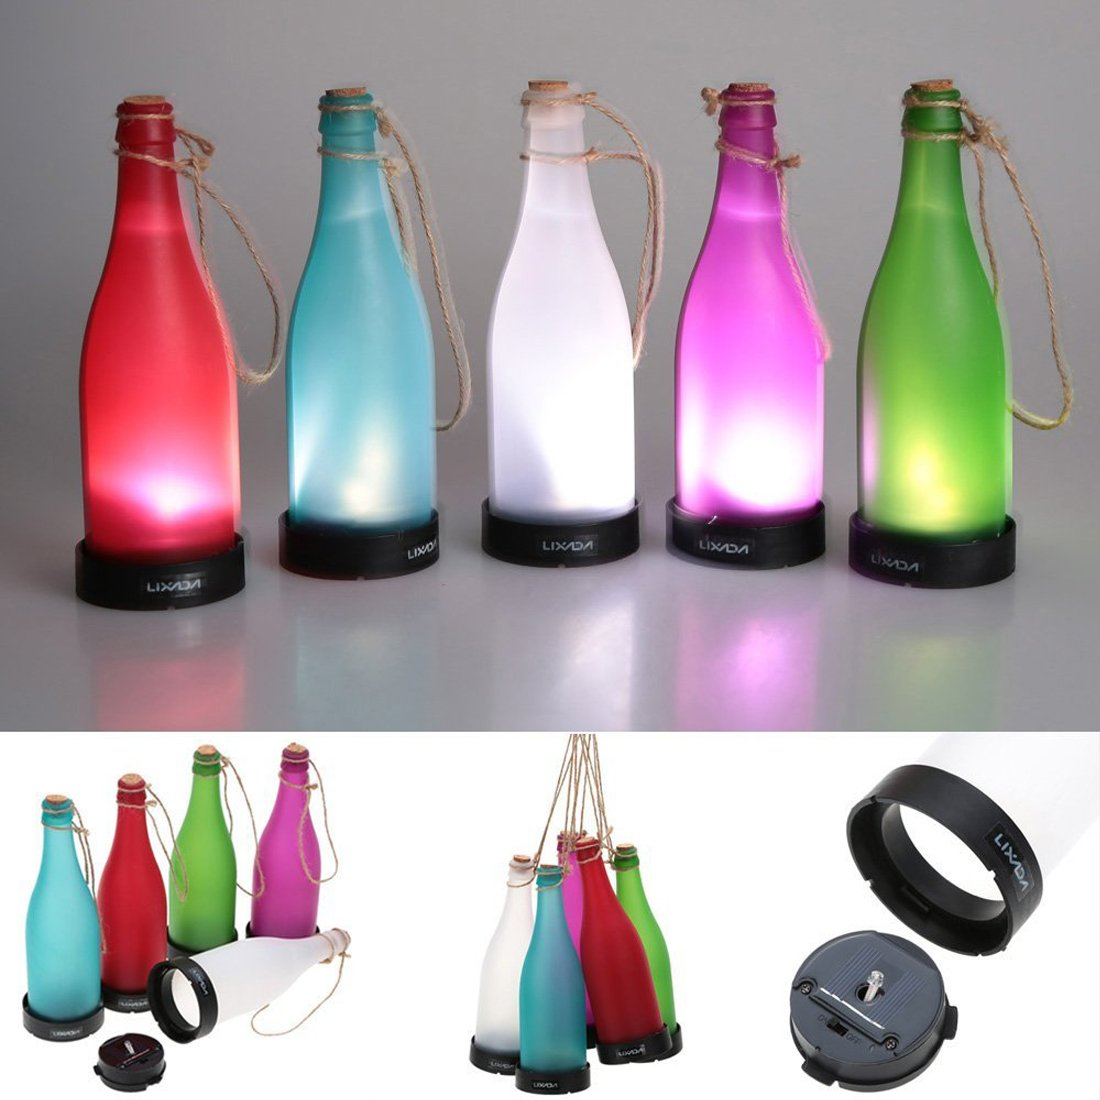 Amazon.com : AngelaKerry LED Solar Powered Bottle Light Hanging Patio Lamp Flame Effect Garden Yard Hanging Lamp - Red : Garden & Outdoor